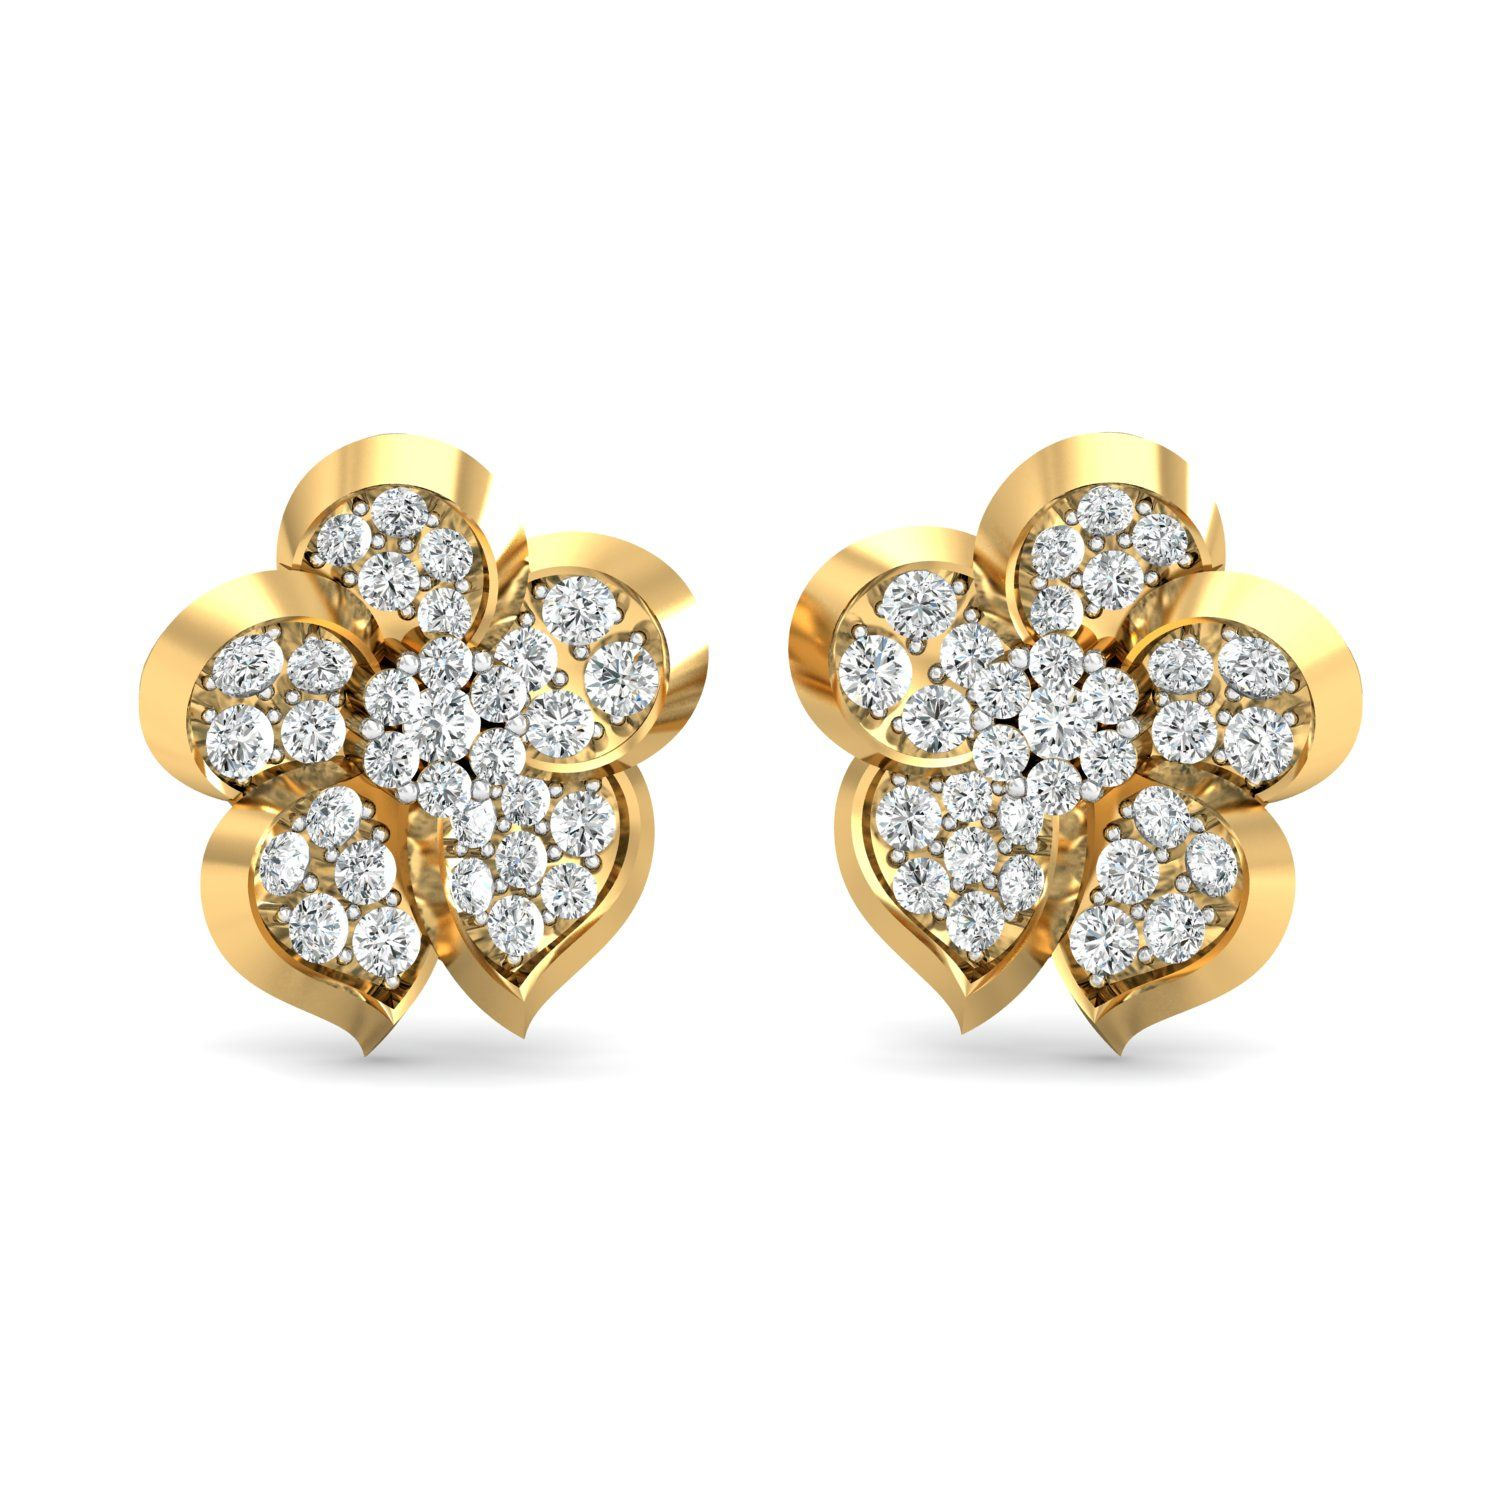 5b1e9861948 Gold Earrings 1.032 Ct Real Certified Diamond Everyday